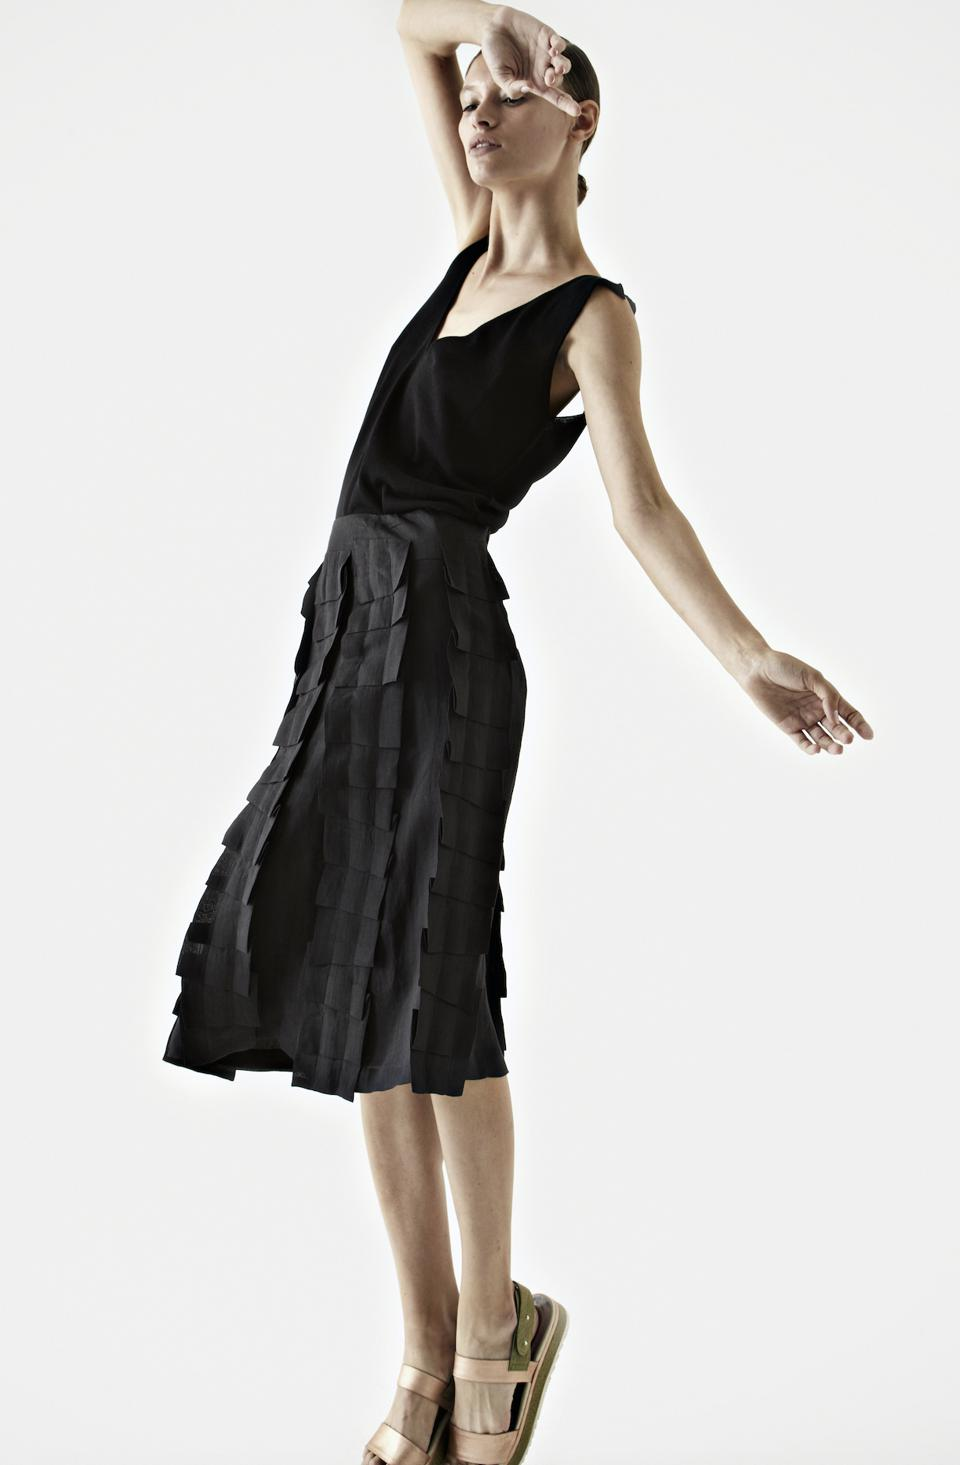 Finest quality 100% light linen skirt with origami applications; high gauge fine cotton top.